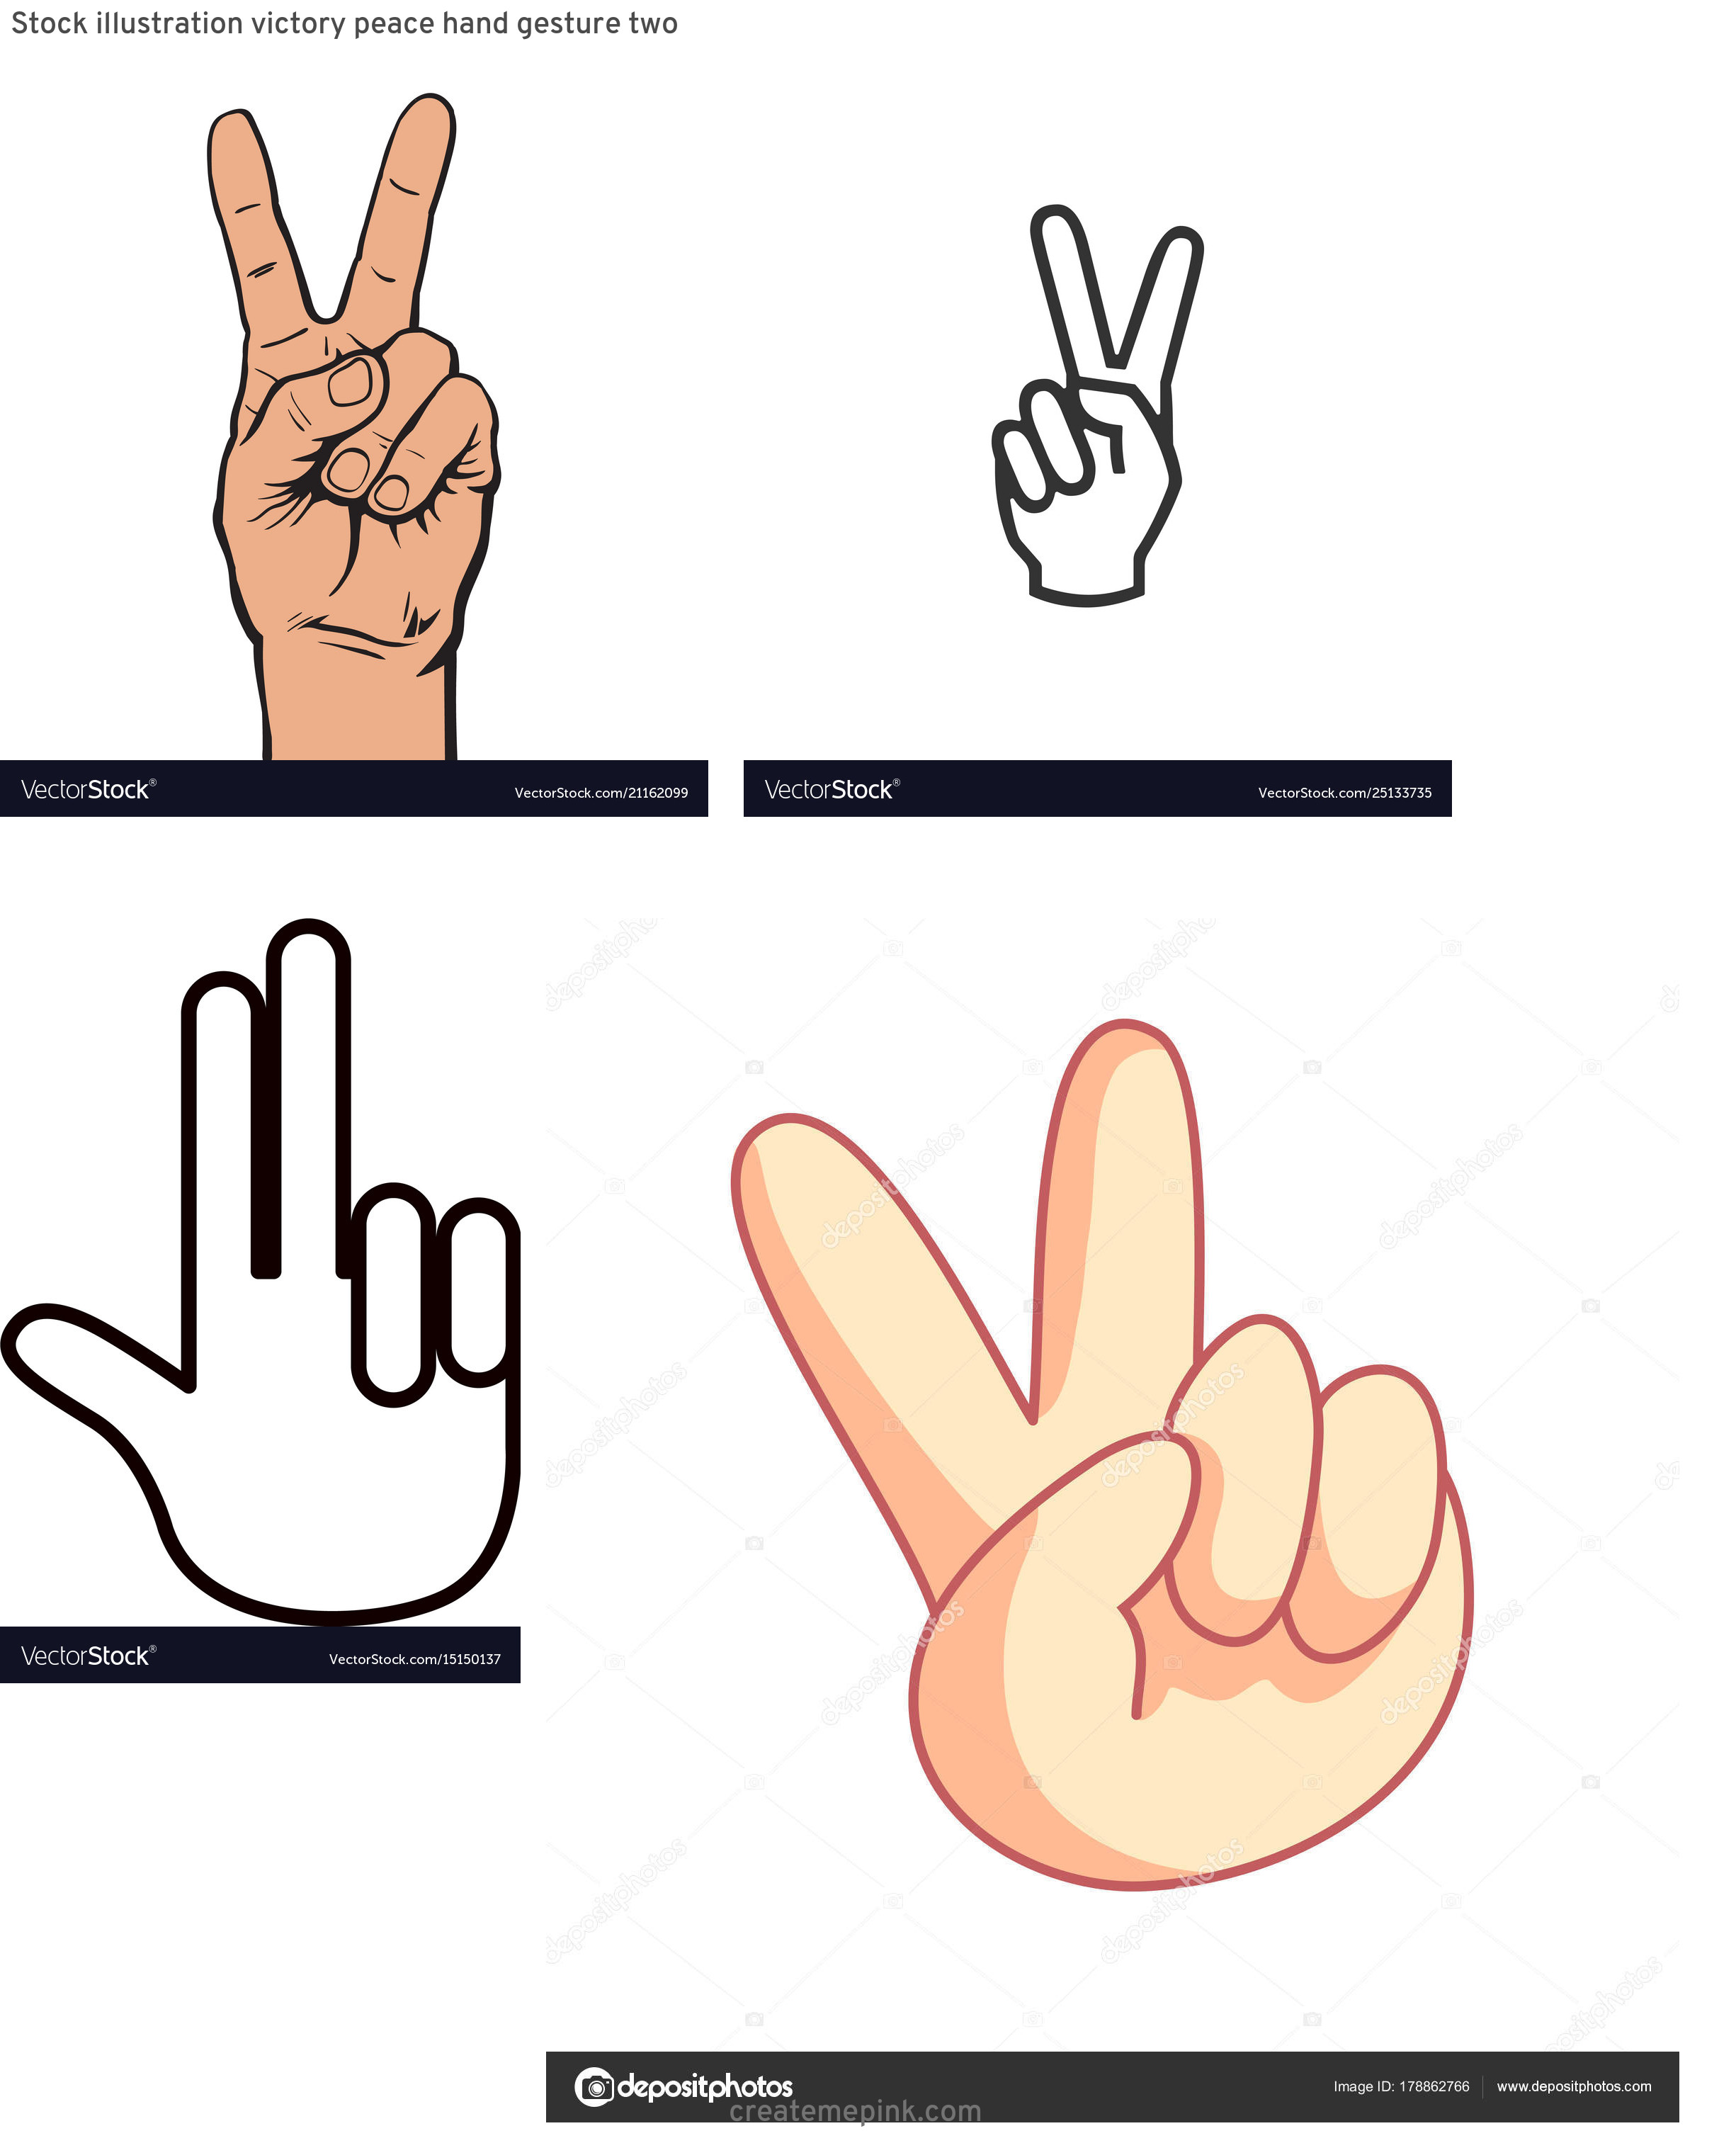 Two Finger Vector: Stock Illustration Victory Peace Hand Gesture Two